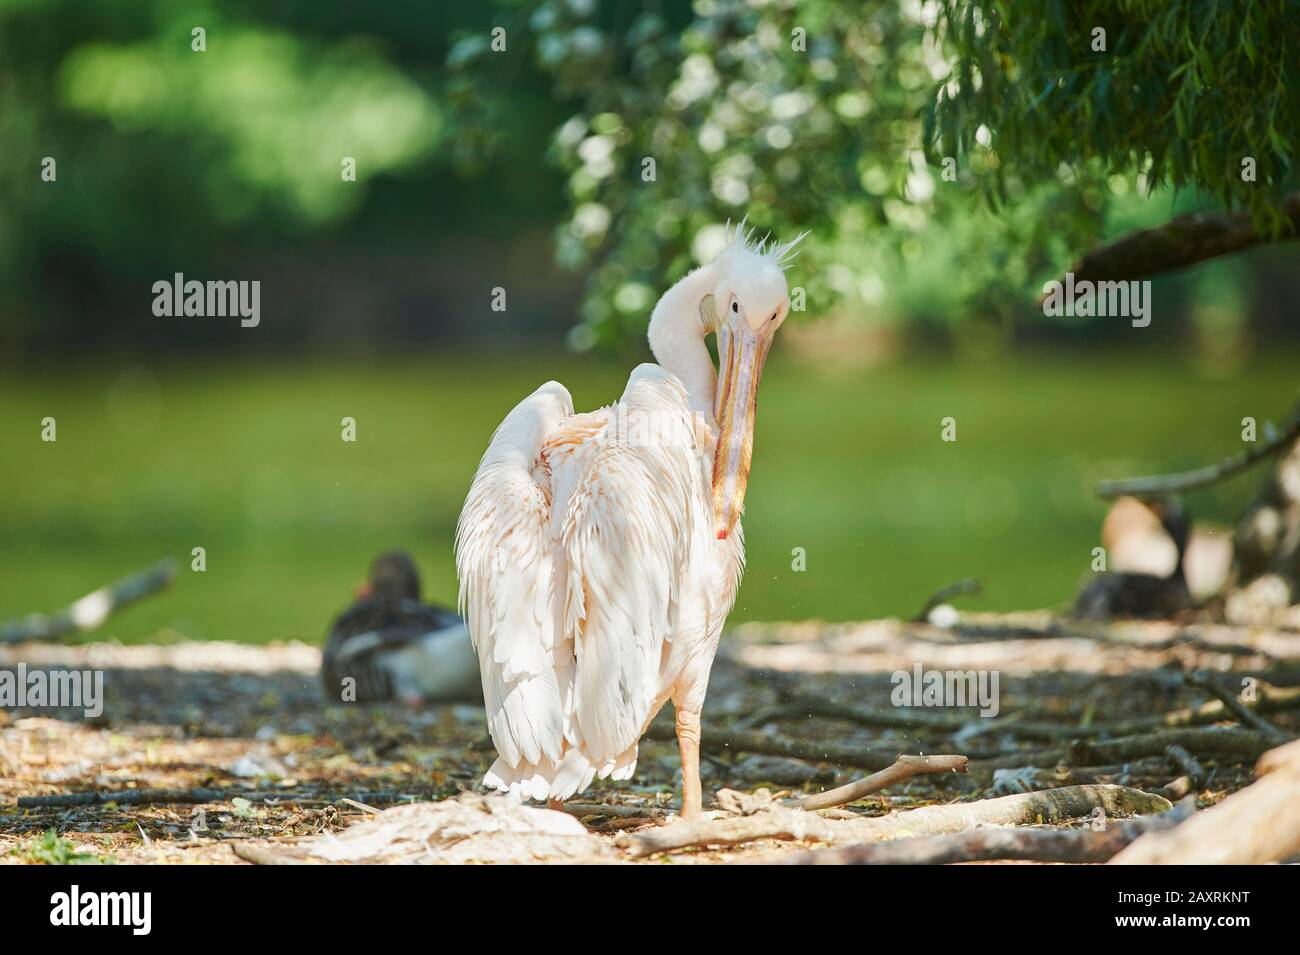 Dalmatian Pelican, Pelecanus crispus, cleaning, from behind Stock Photo